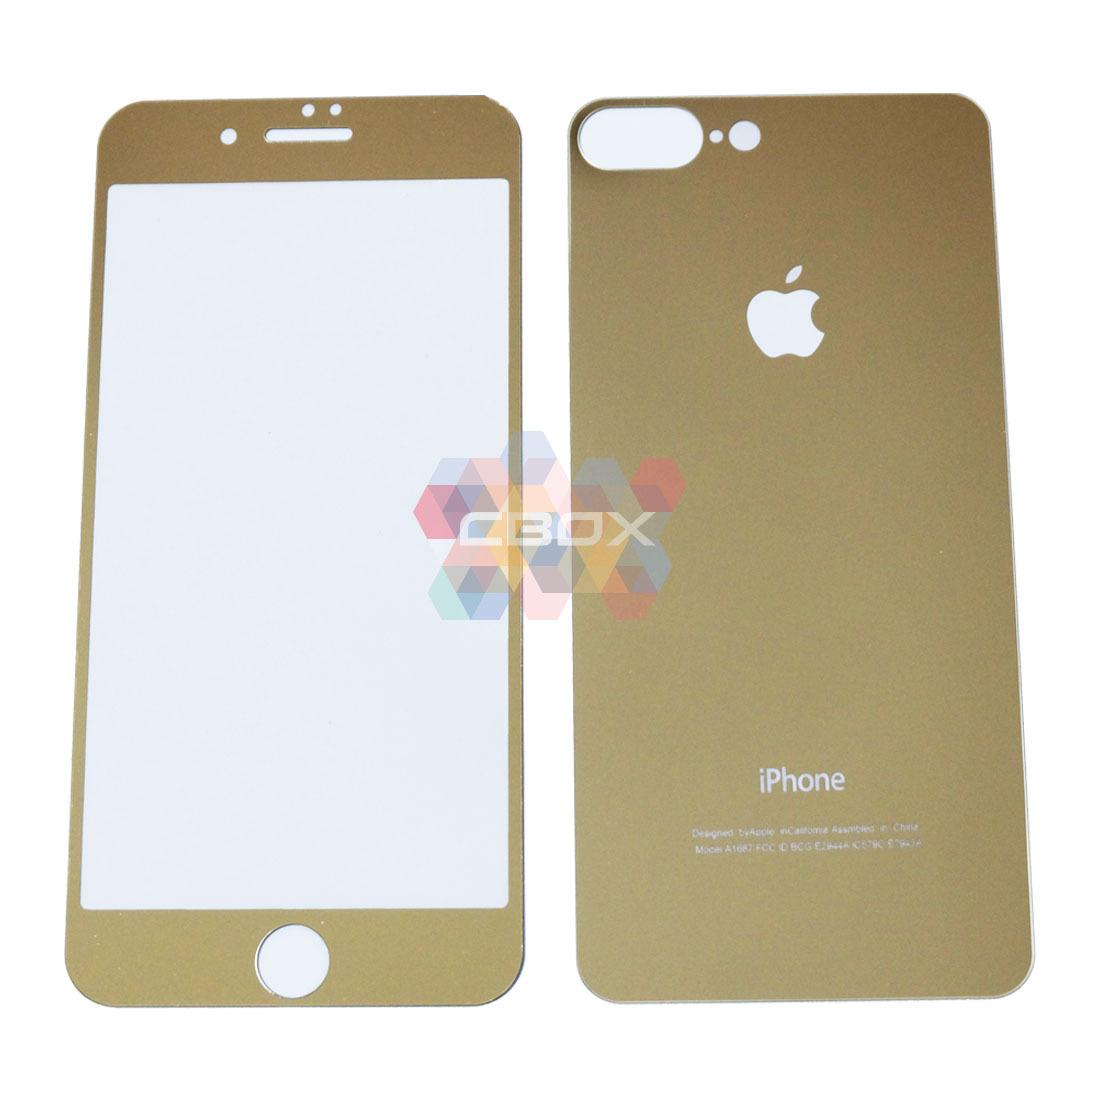 Tempered Glass Iphone 6g6s47 Inchi Full Black Anti Gores Kaca Screen Laptop 14 Inch Protector Mr Apple 7 Plus 5 Mirror 2in1